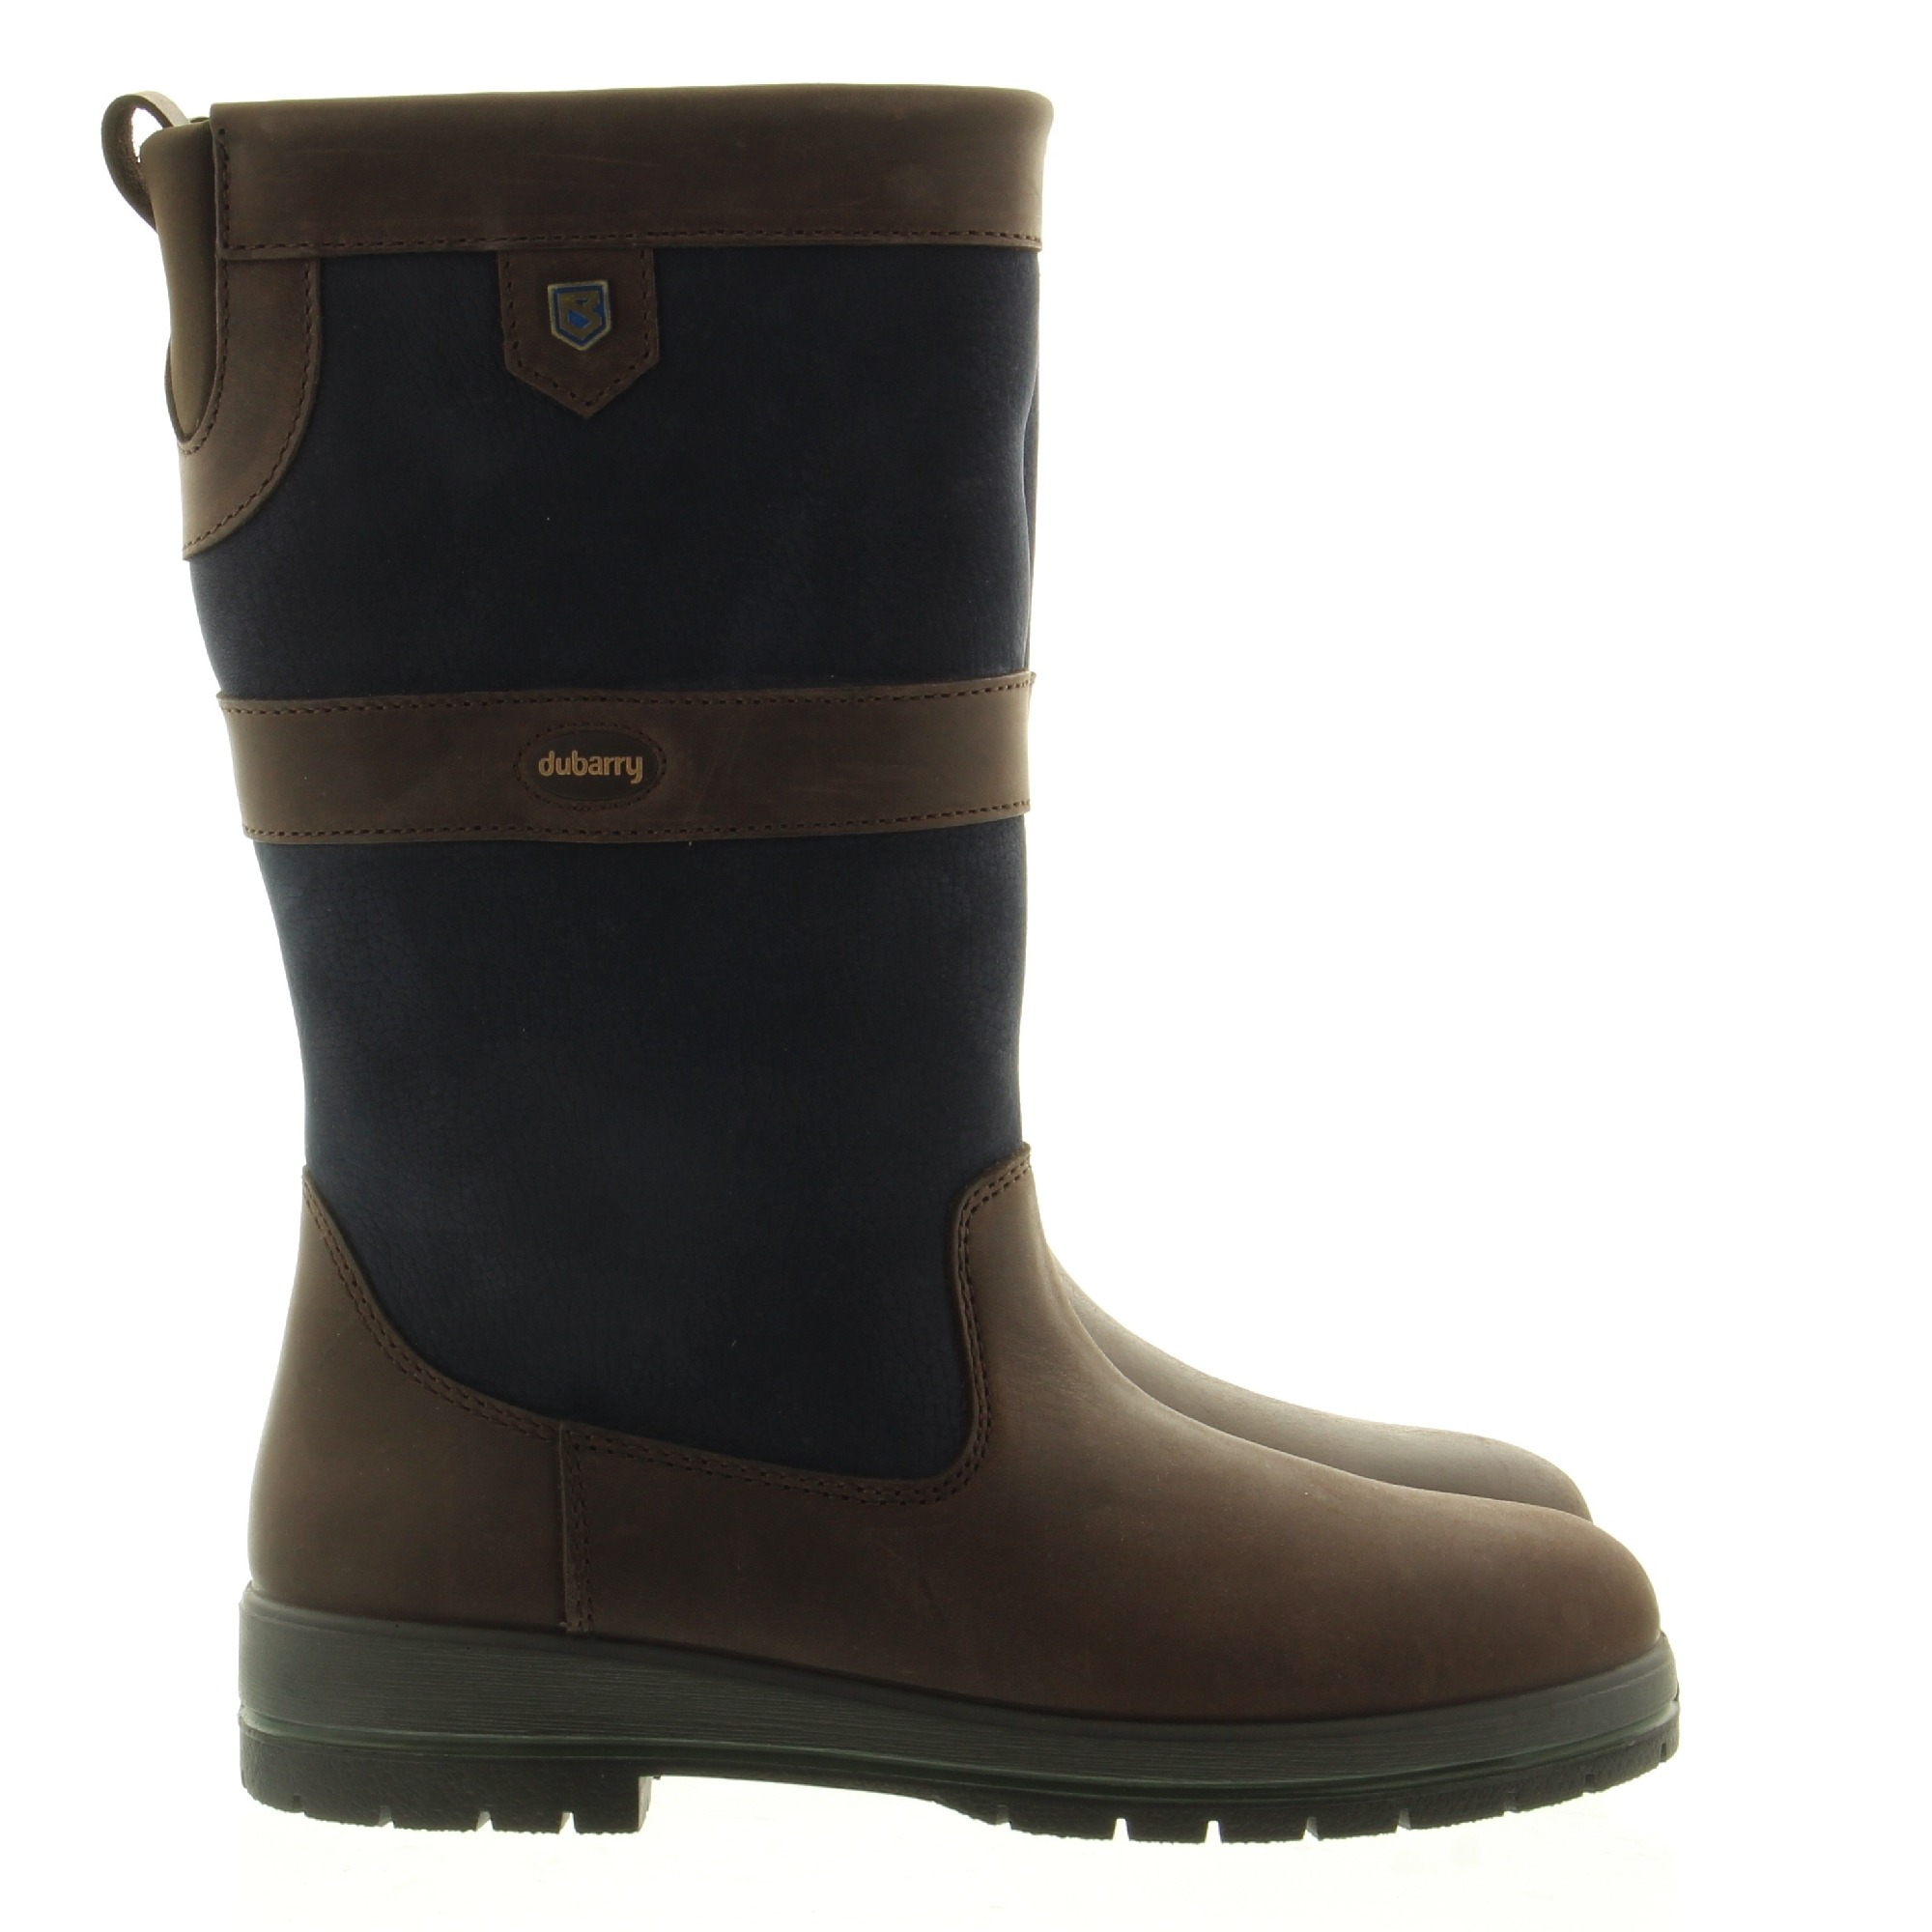 Dubarry Kildare 3892 Lady 32 Navy Brown